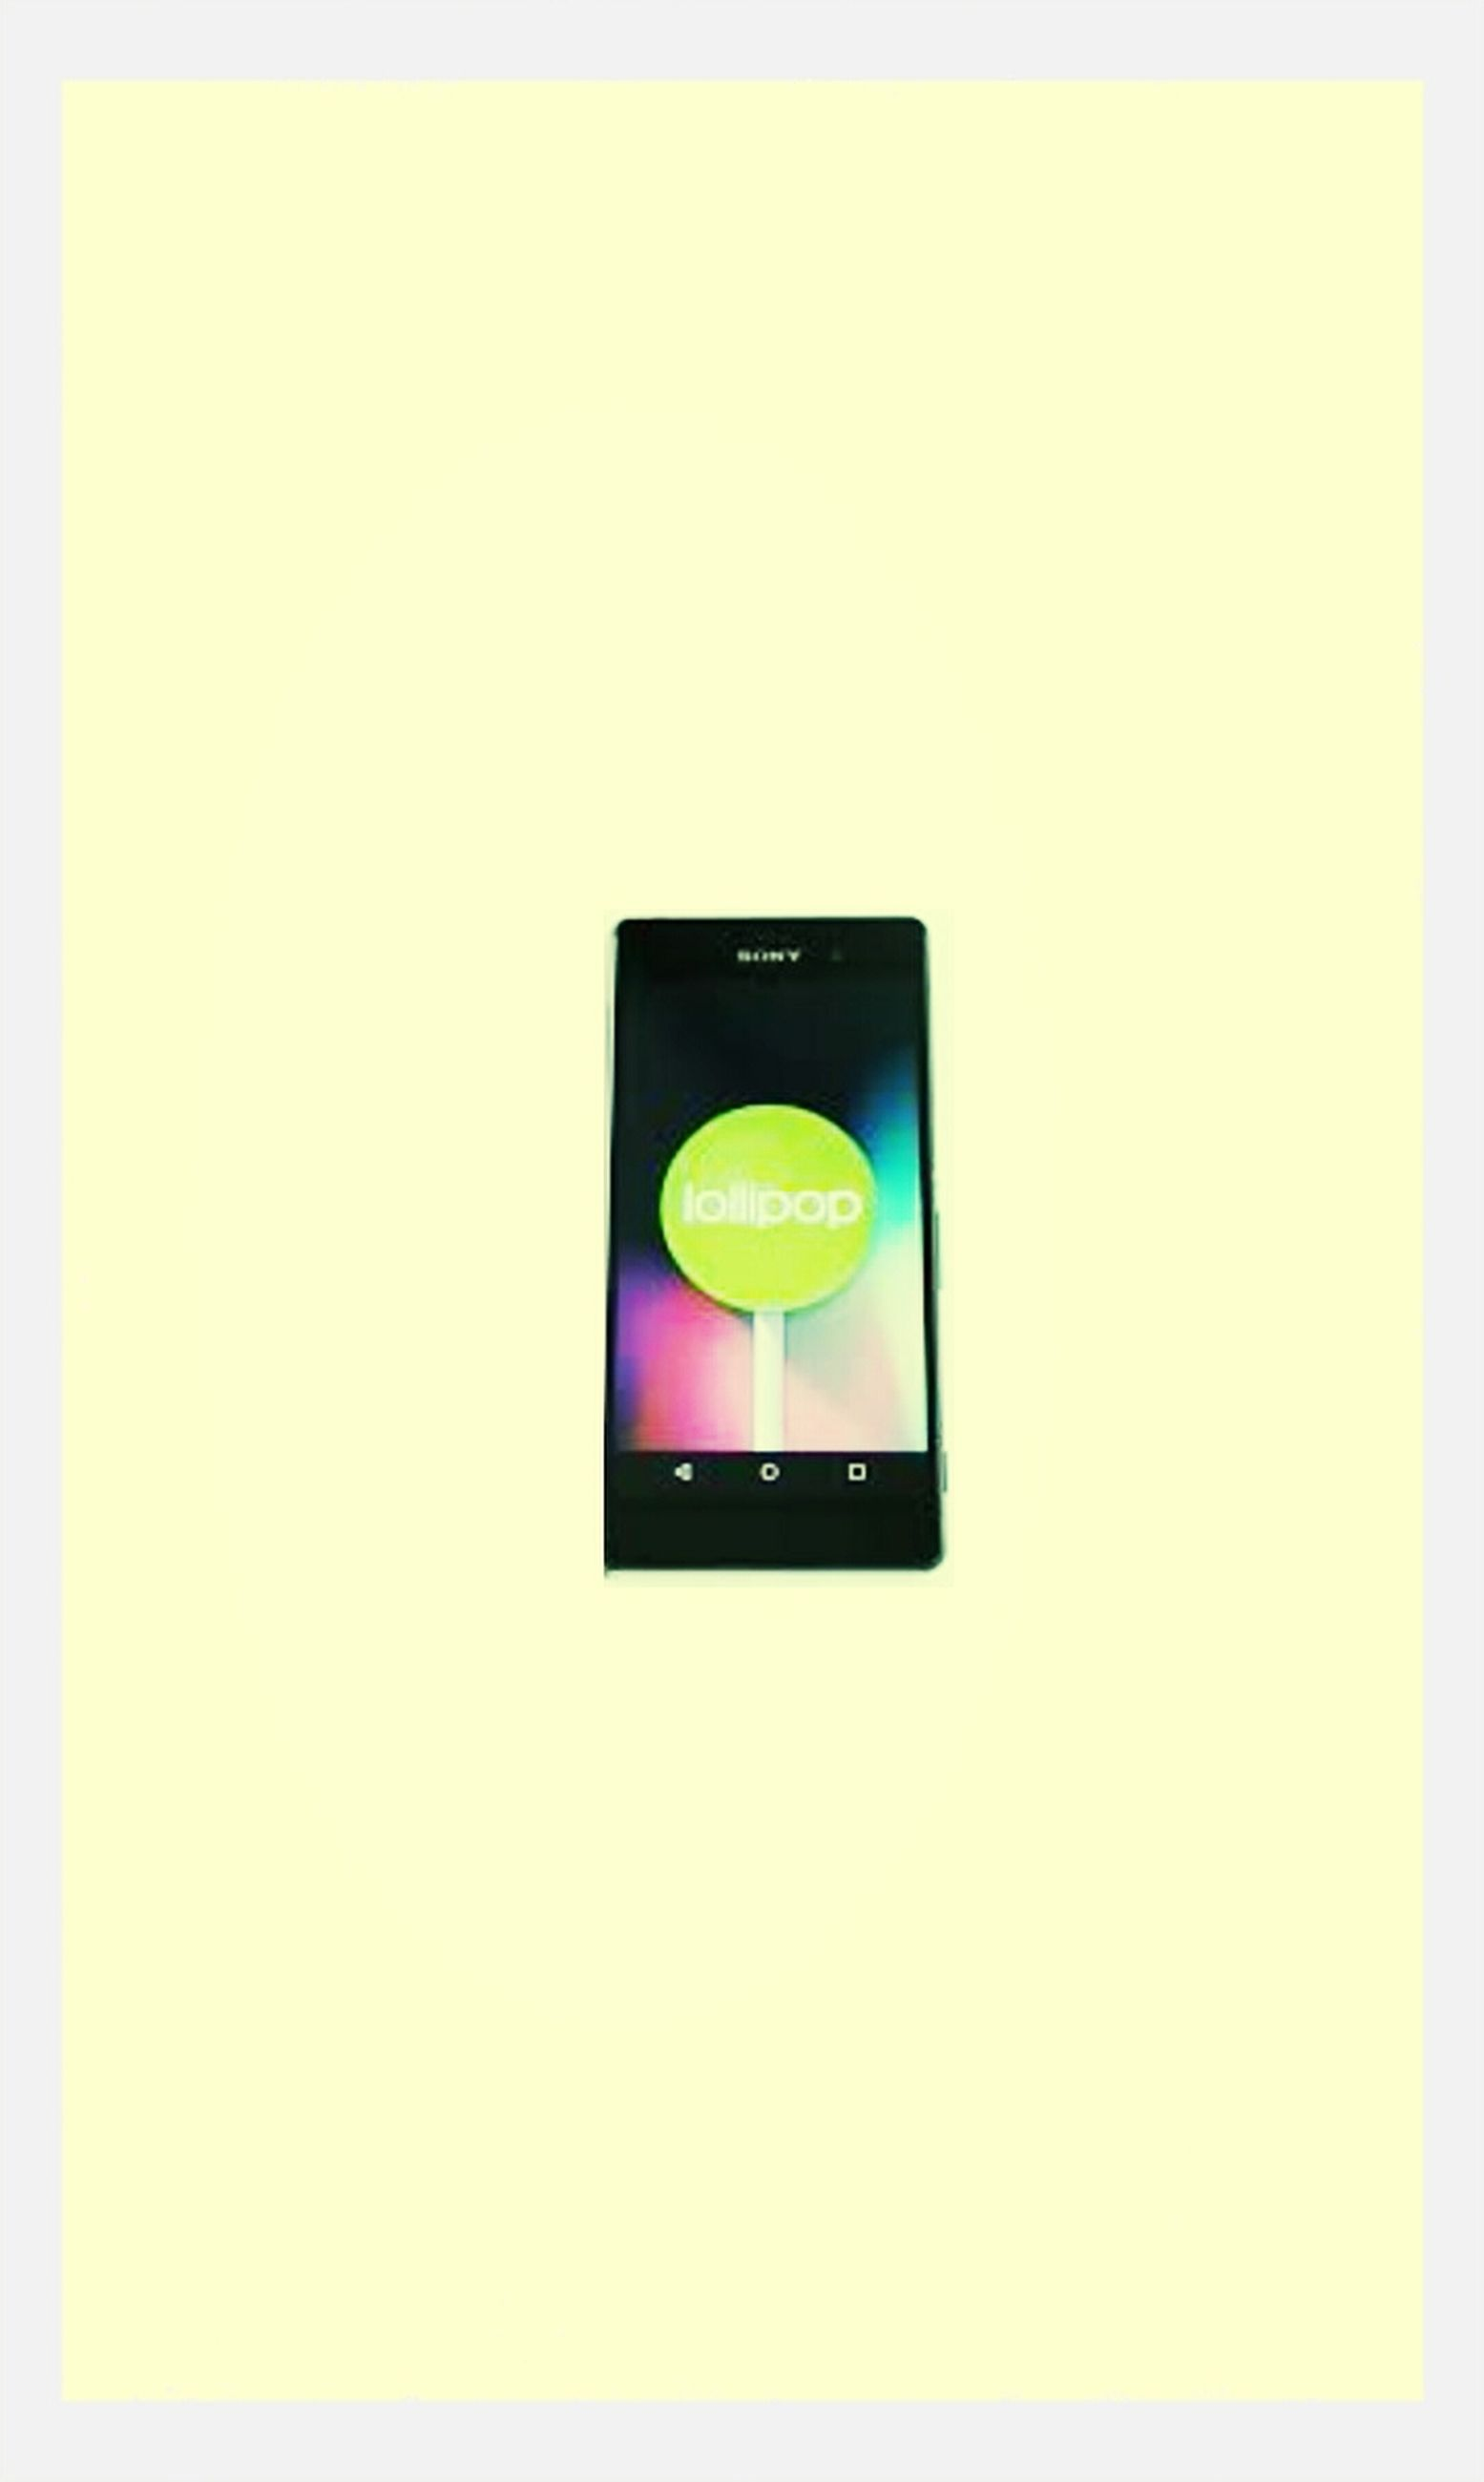 copy space, communication, indoors, studio shot, transfer print, technology, circle, auto post production filter, single object, wall - building feature, close-up, green color, geometric shape, clear sky, no people, yellow, white background, wall, number, still life